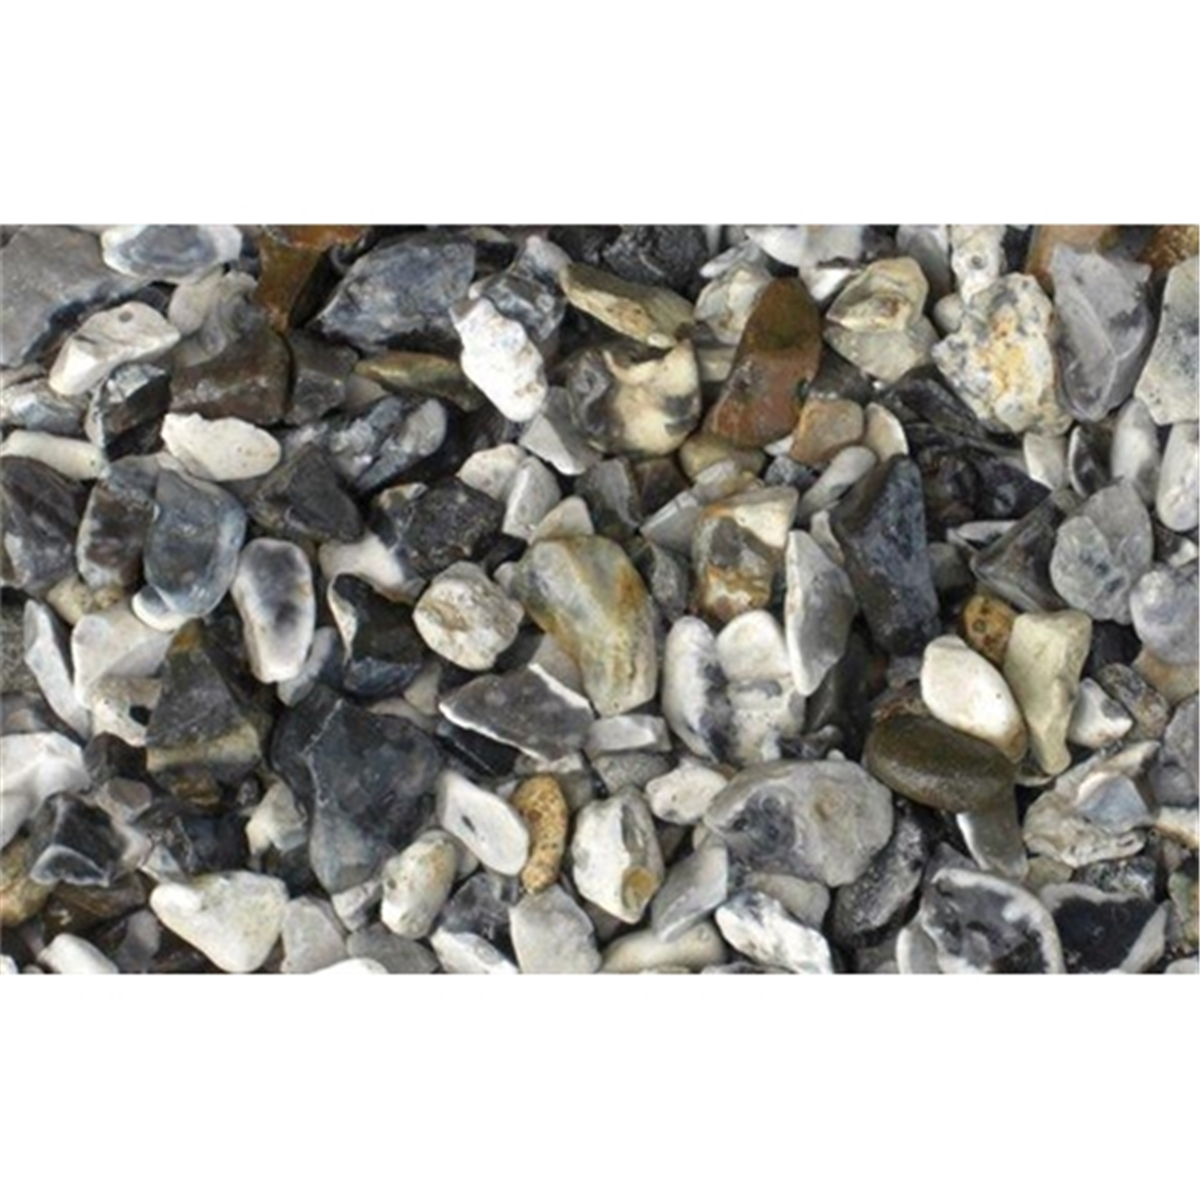 Bulk Bag 850kg Moonstone Gravel